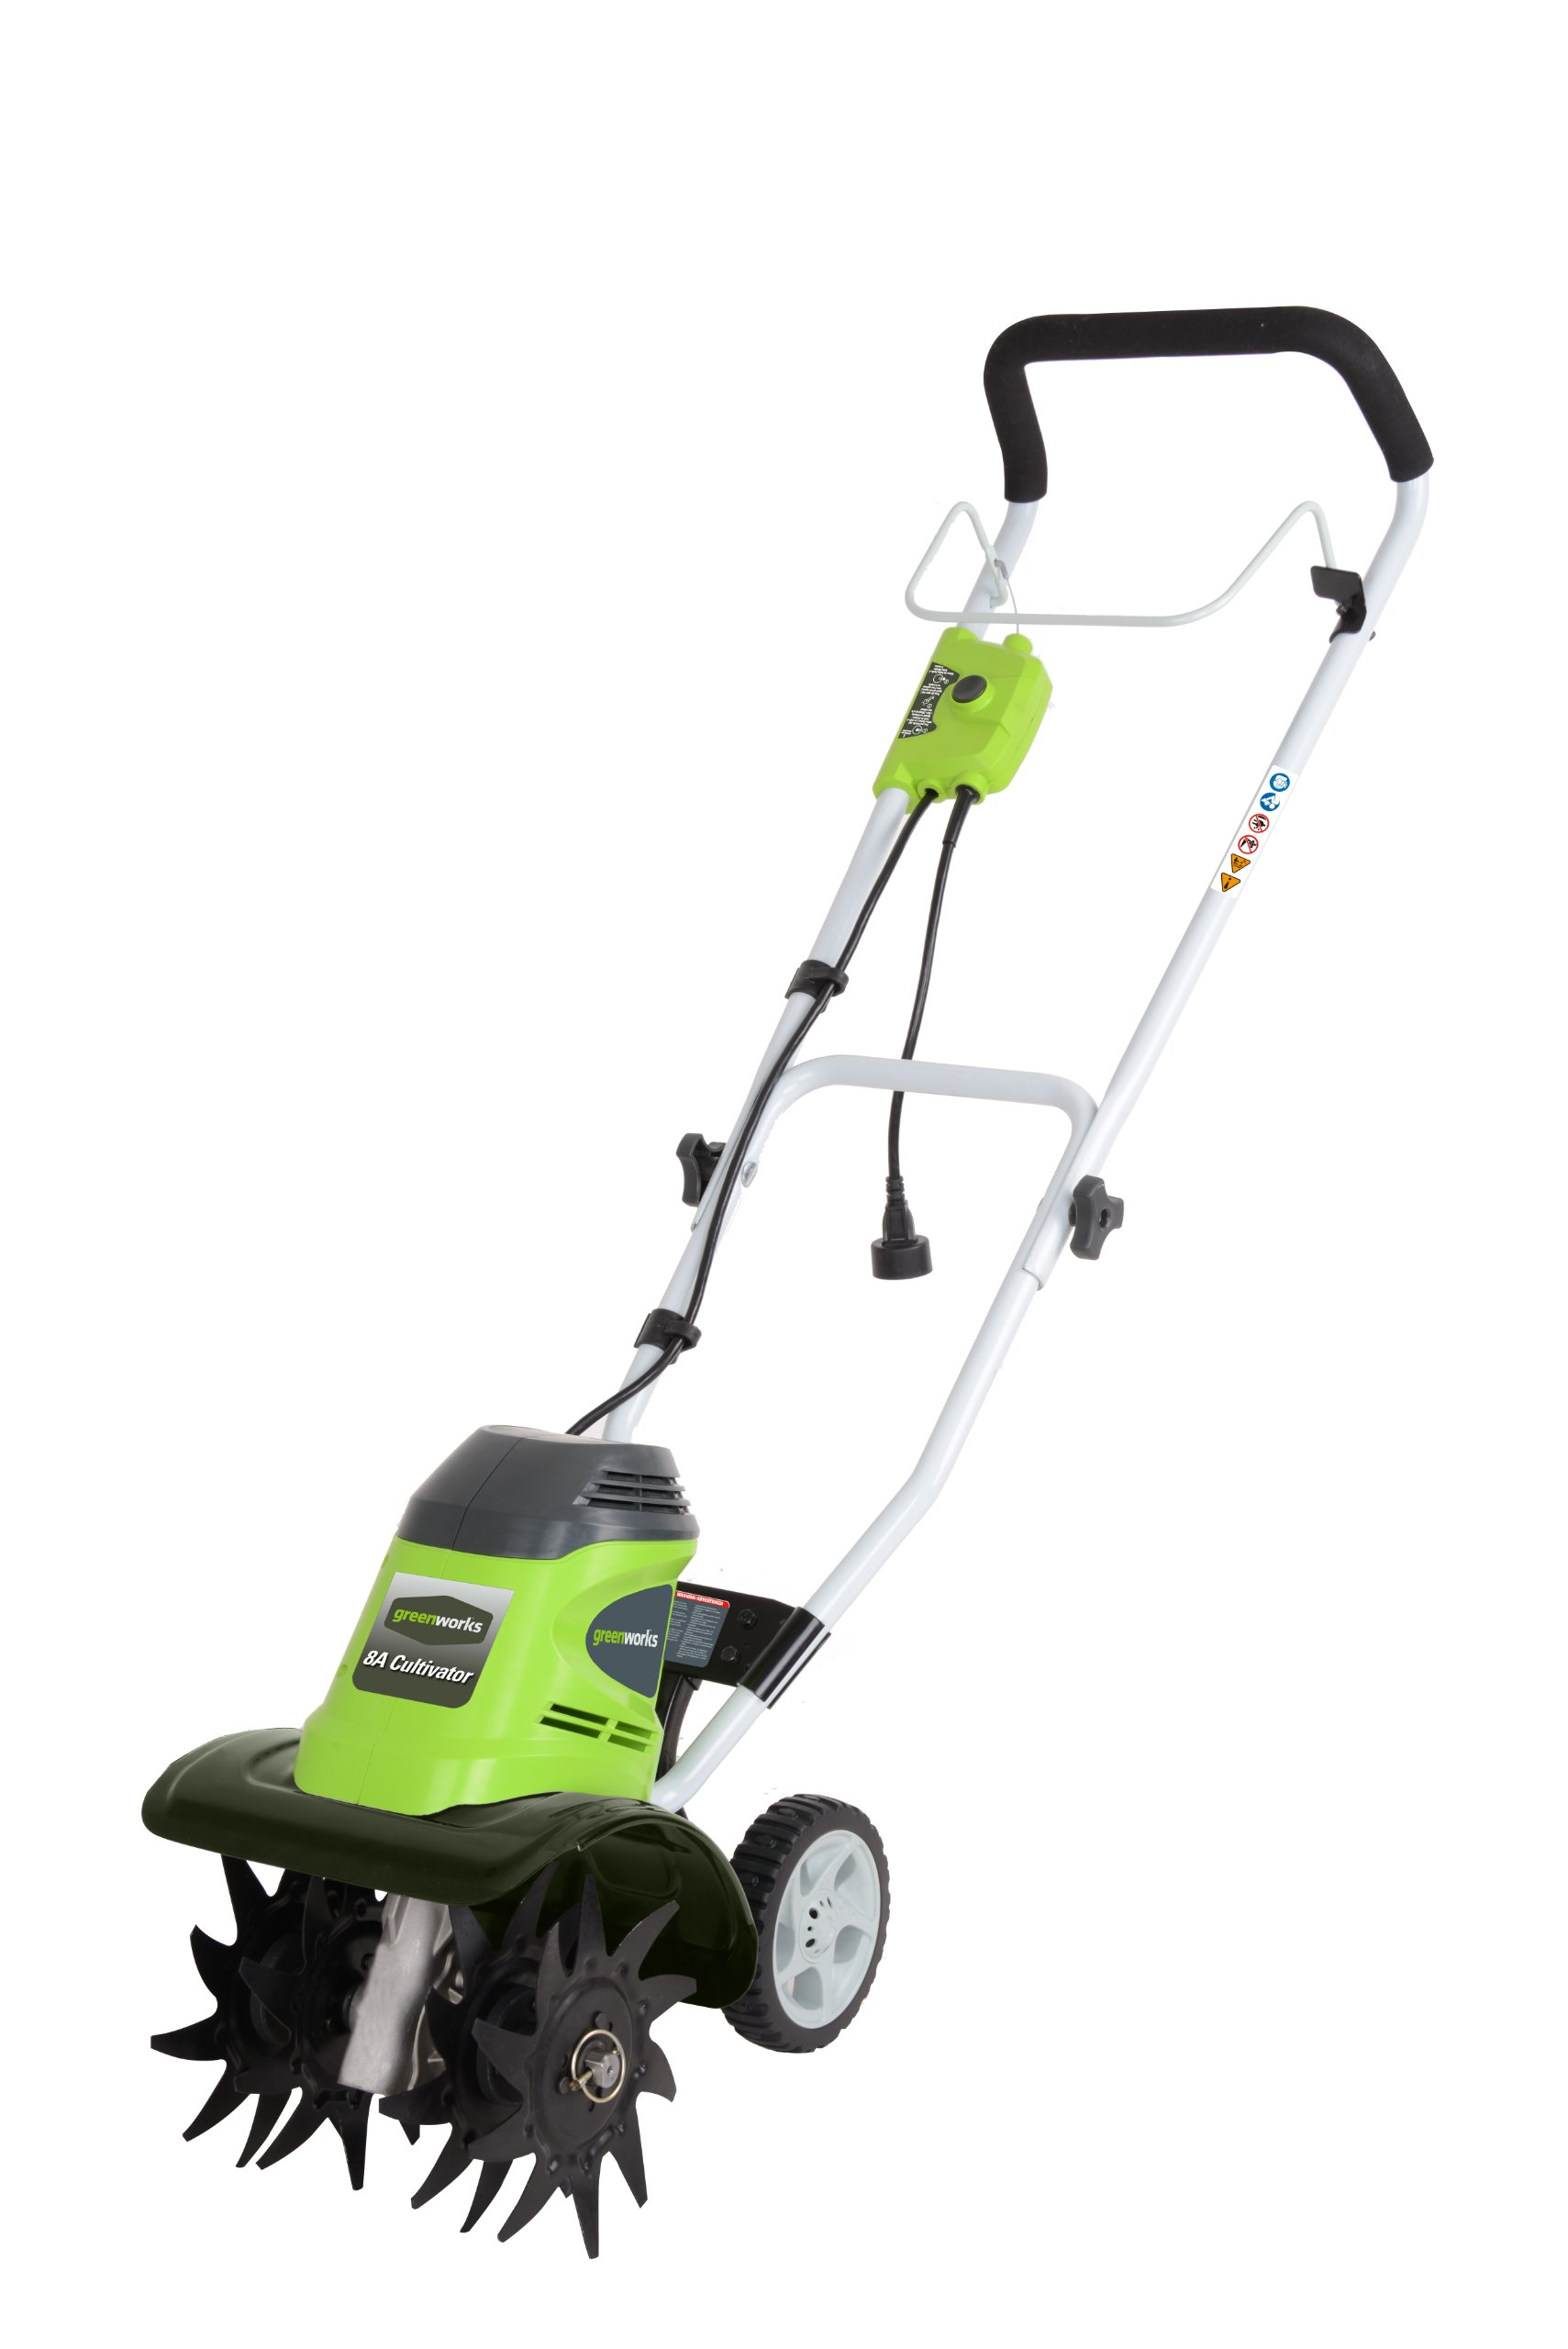 Greenworks 10-Inch 8 Amp Corded Tiller 27072 by Greenworks